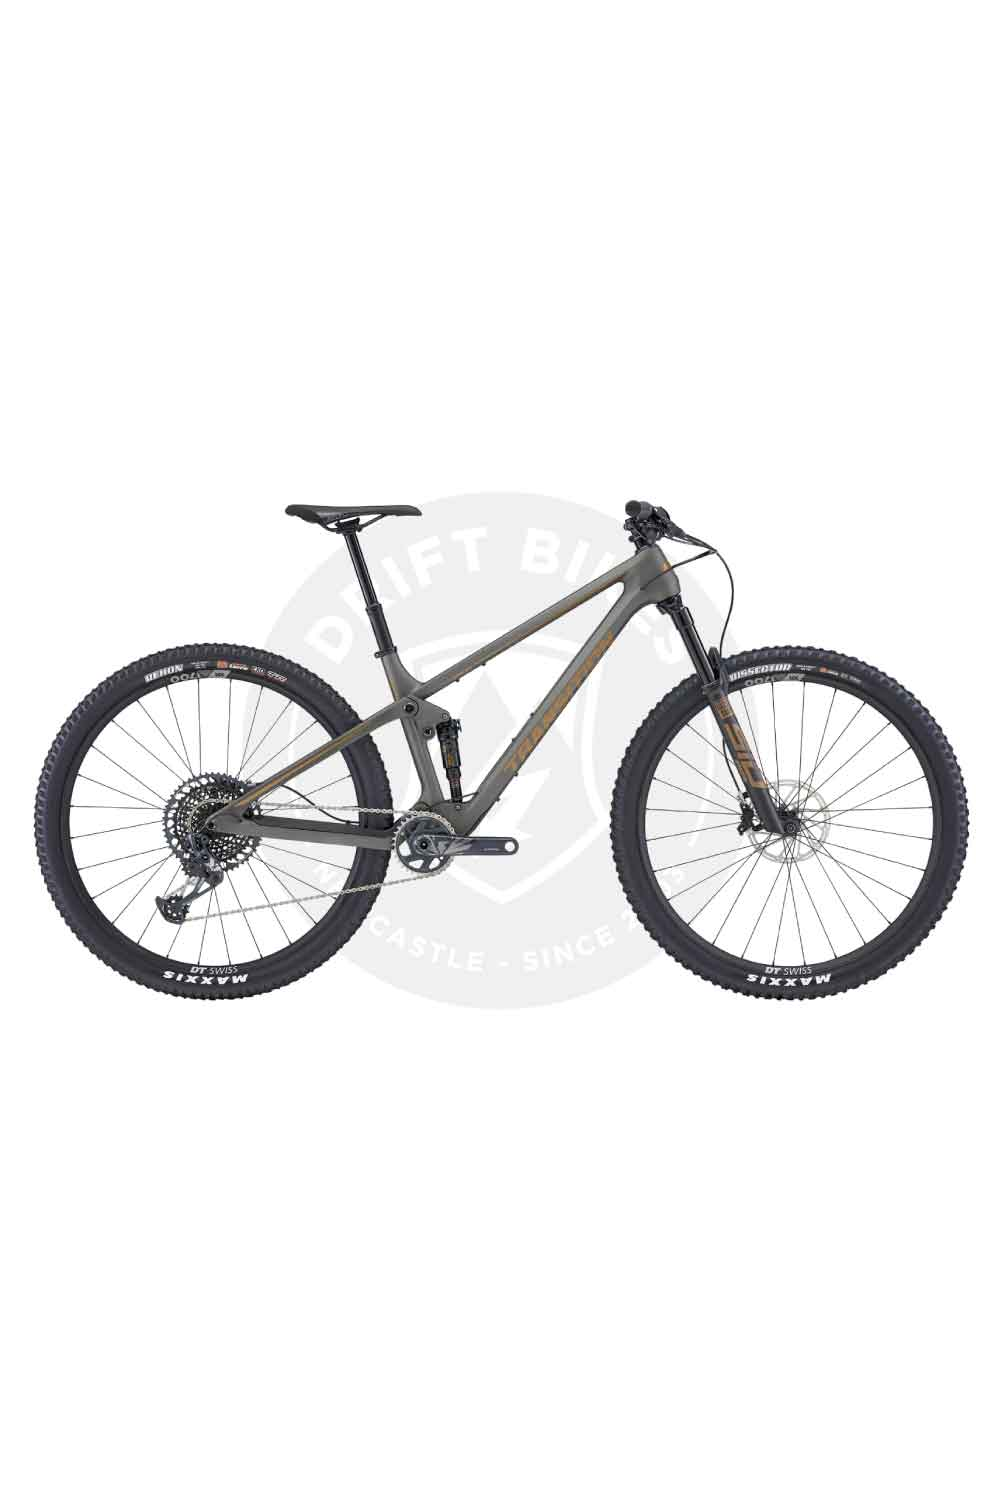 Transition SPUR Carbon X01 MTB